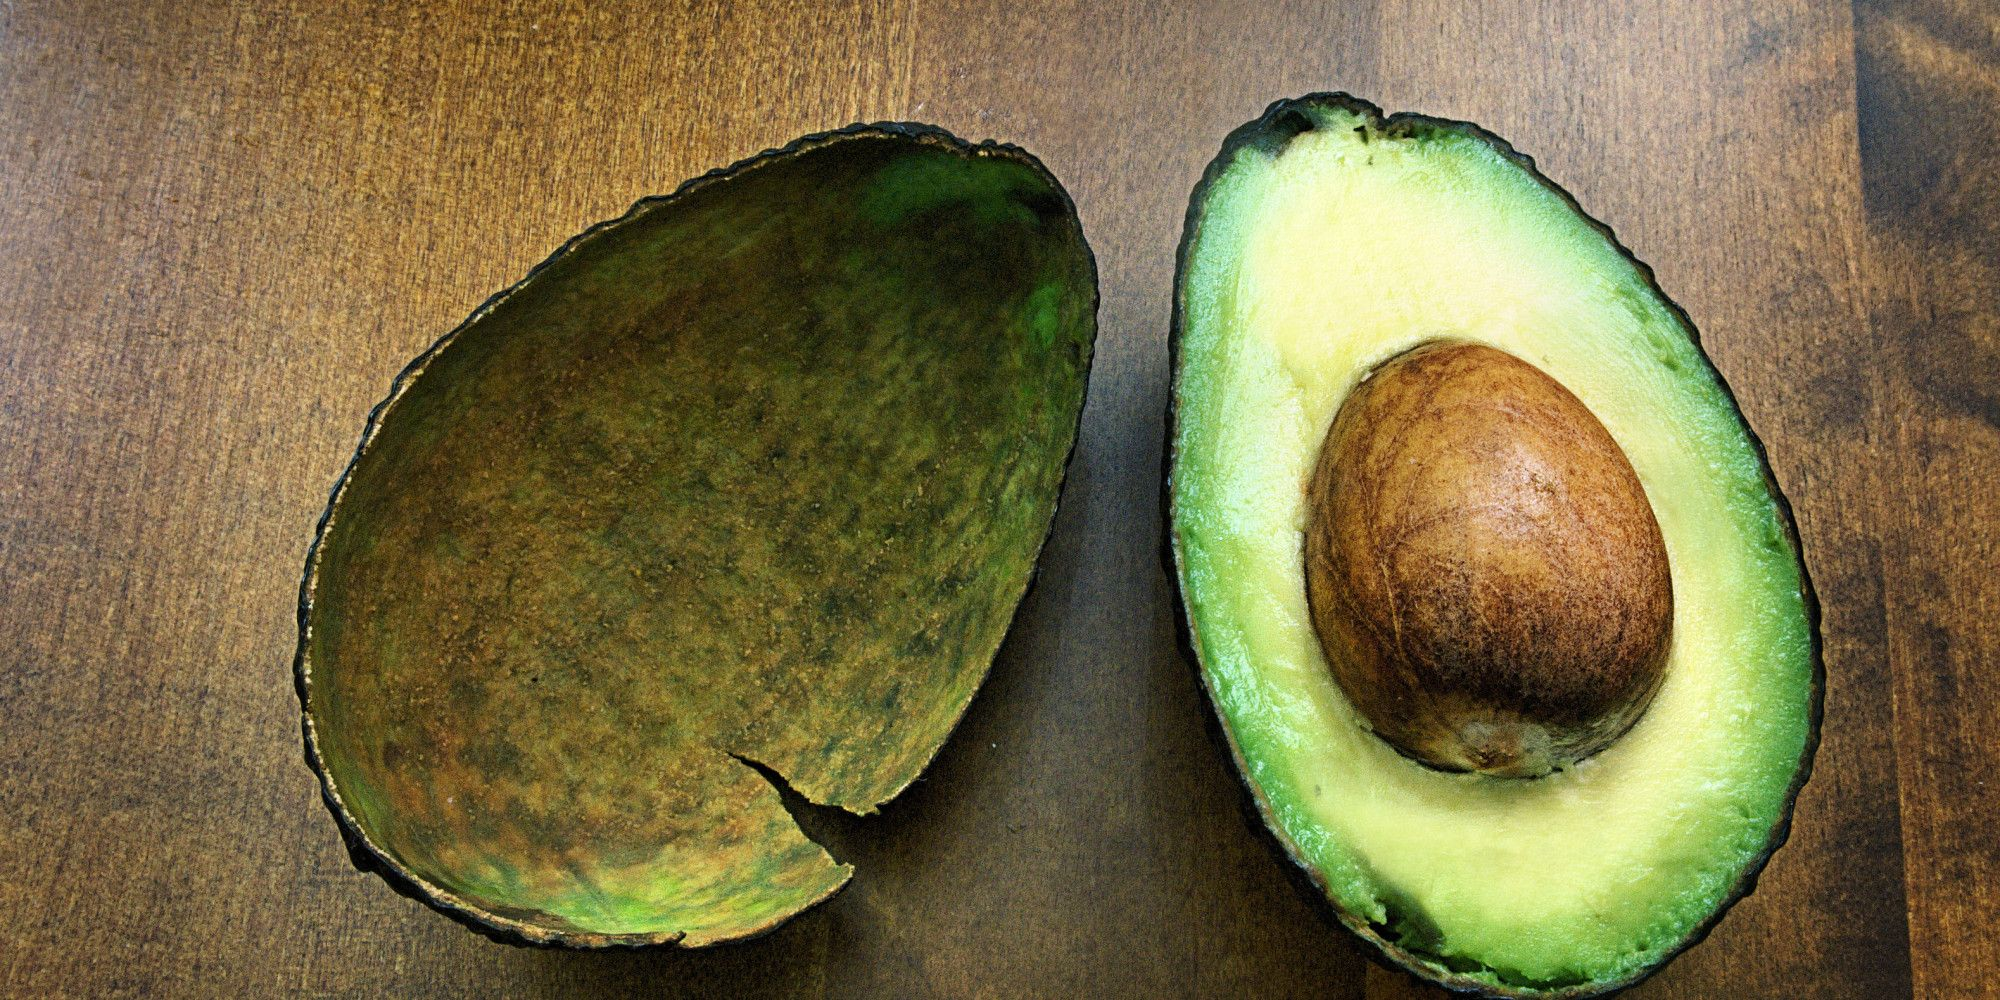 How To Ripen A Hard Avocado (It Only Takes A Minute)